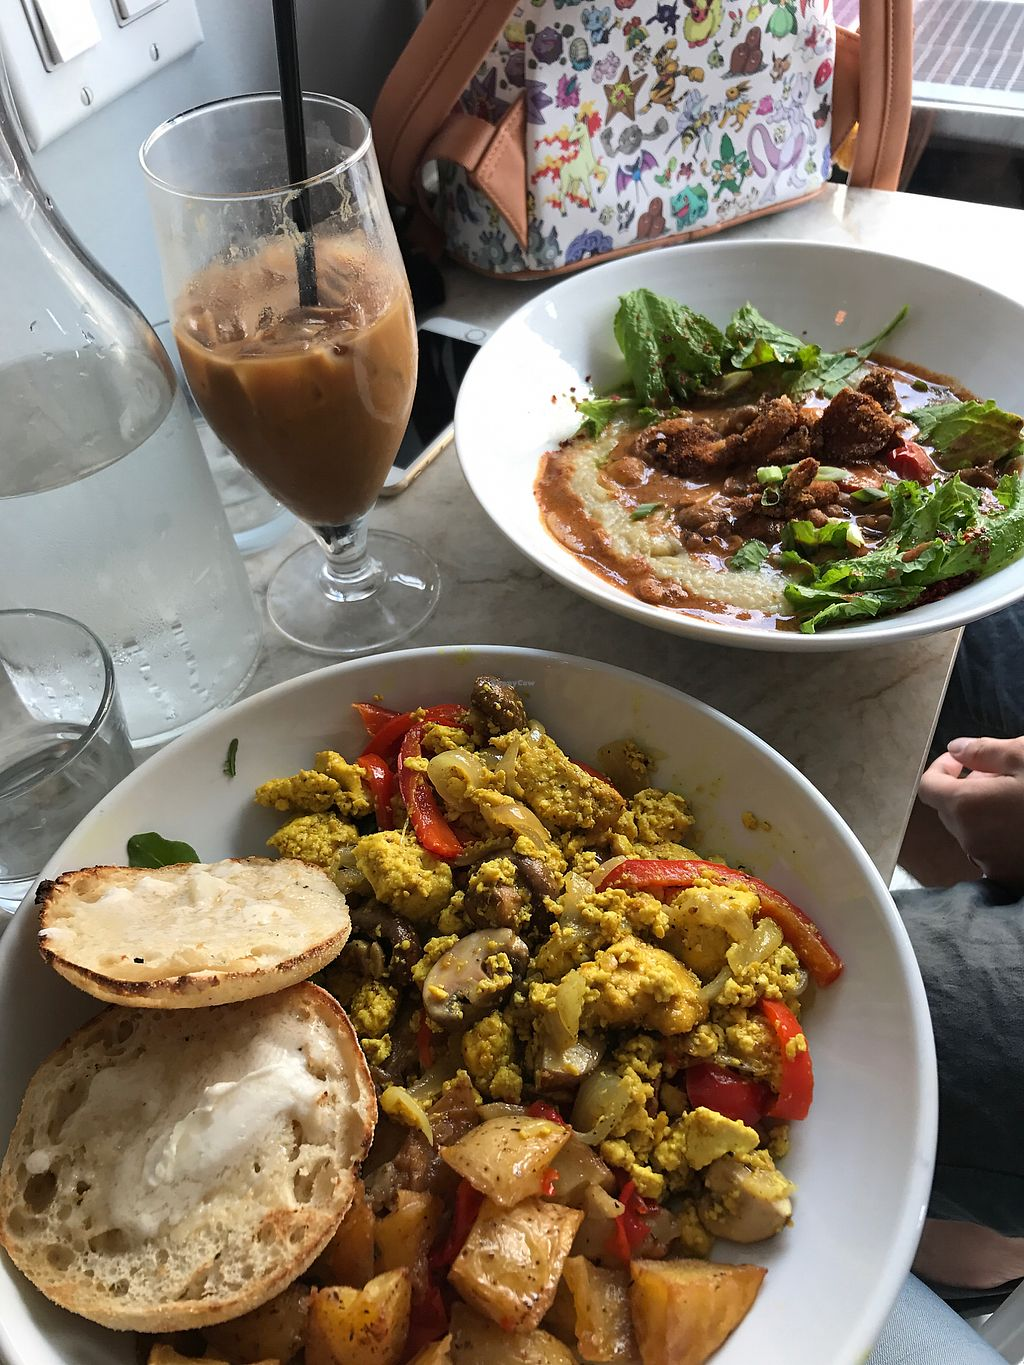 """Photo of Modern Love Brooklyn  by <a href=""""/members/profile/Oliviafoti"""">Oliviafoti</a> <br/>muffins with tofu scramble and open burrito <br/> September 12, 2017  - <a href='/contact/abuse/image/79835/303542'>Report</a>"""